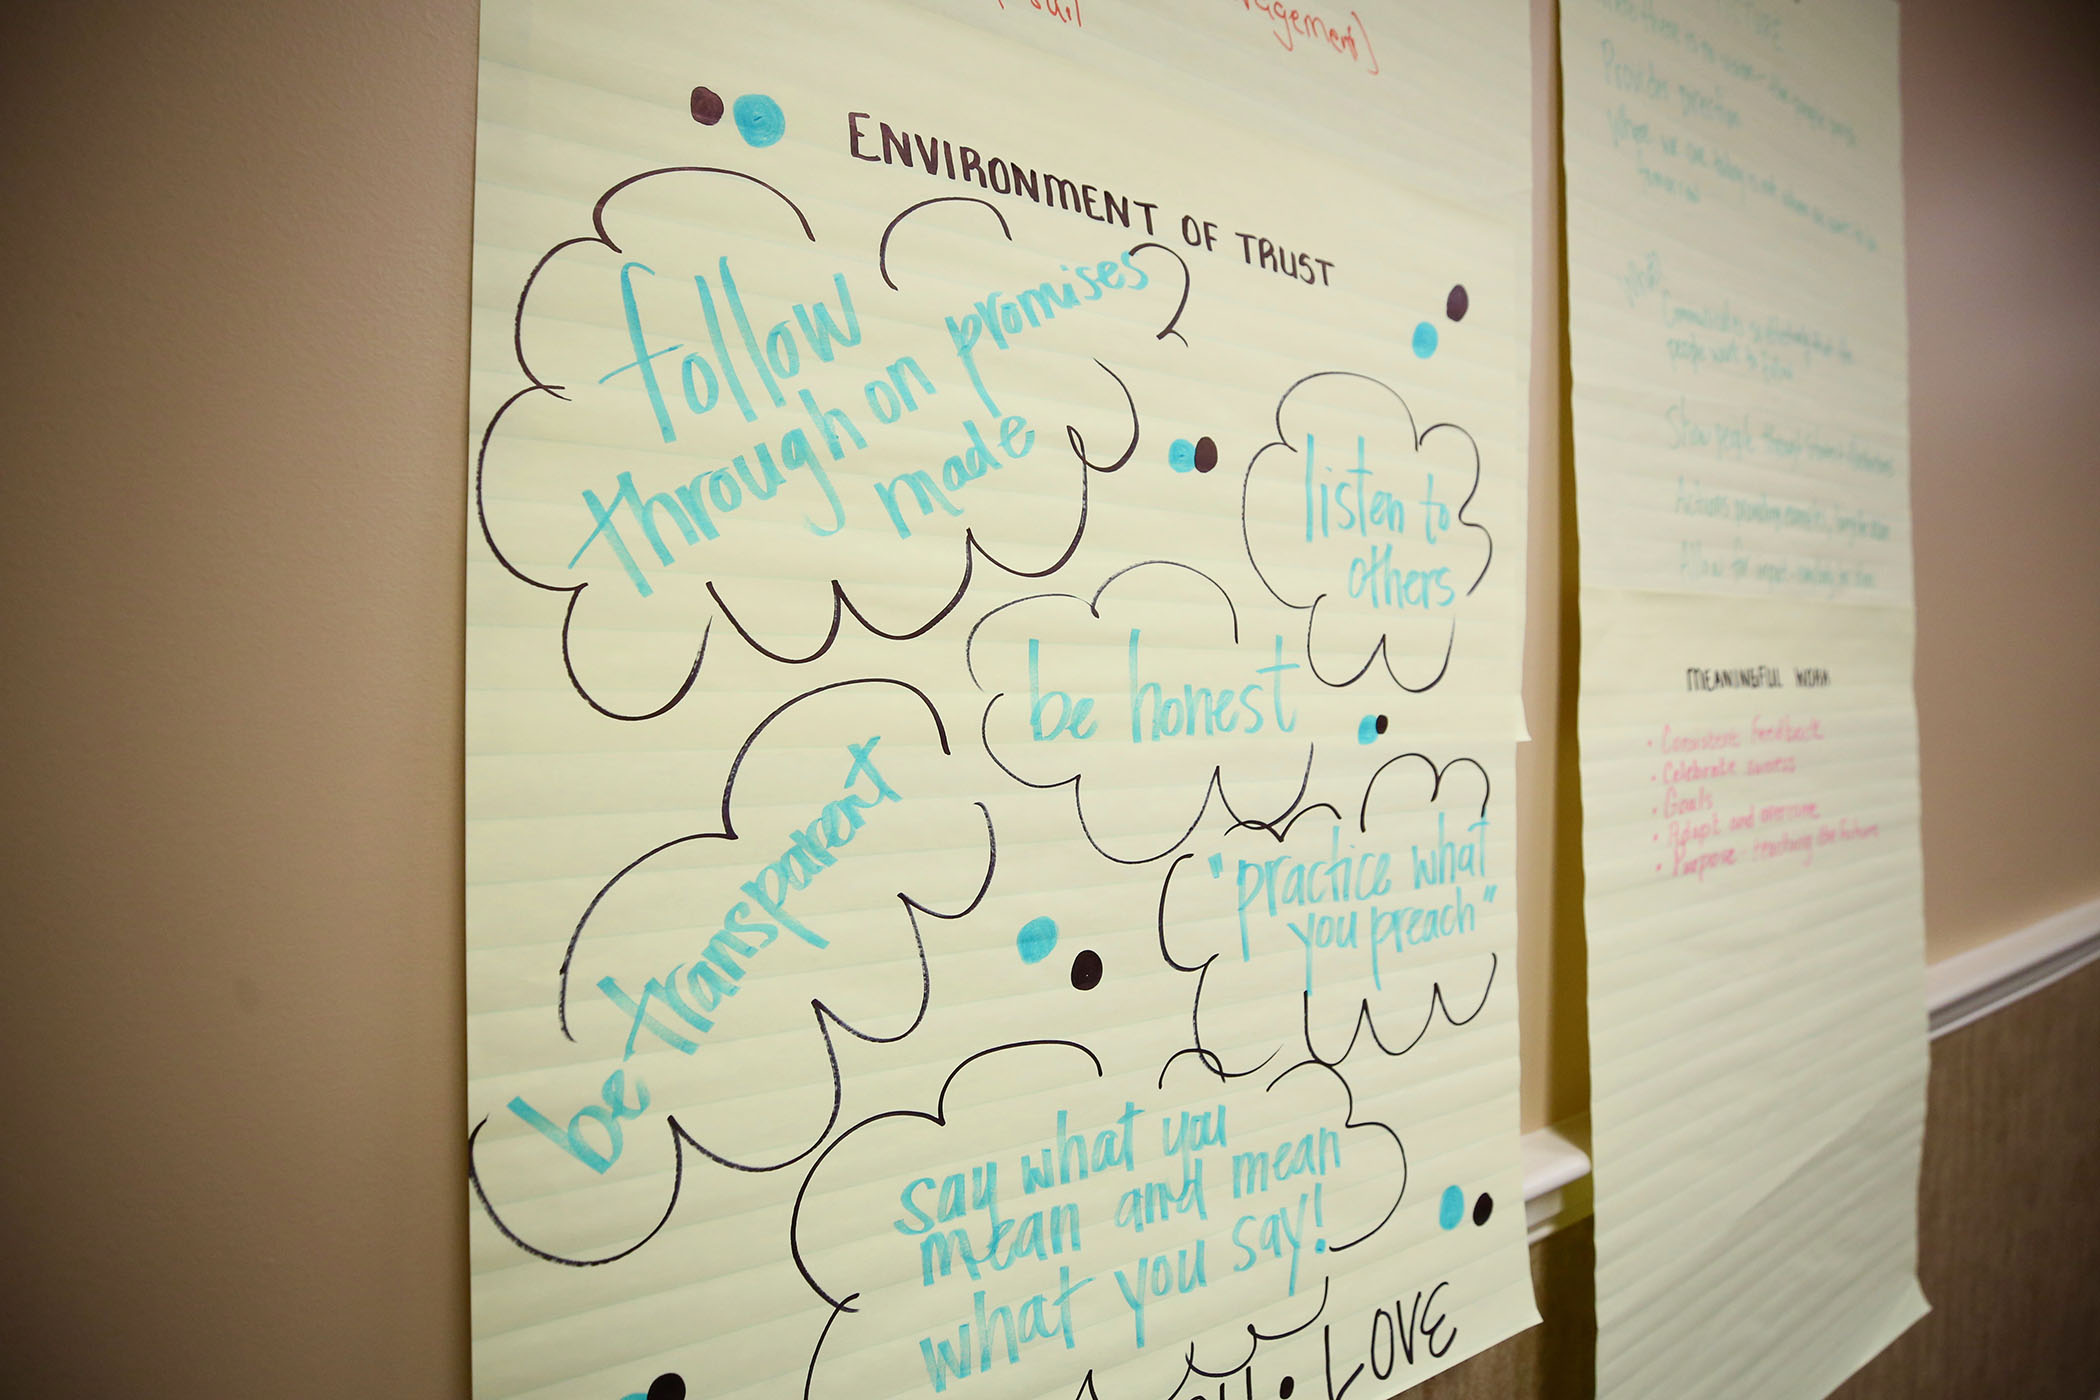 Notes from a meeting hang on a wall.